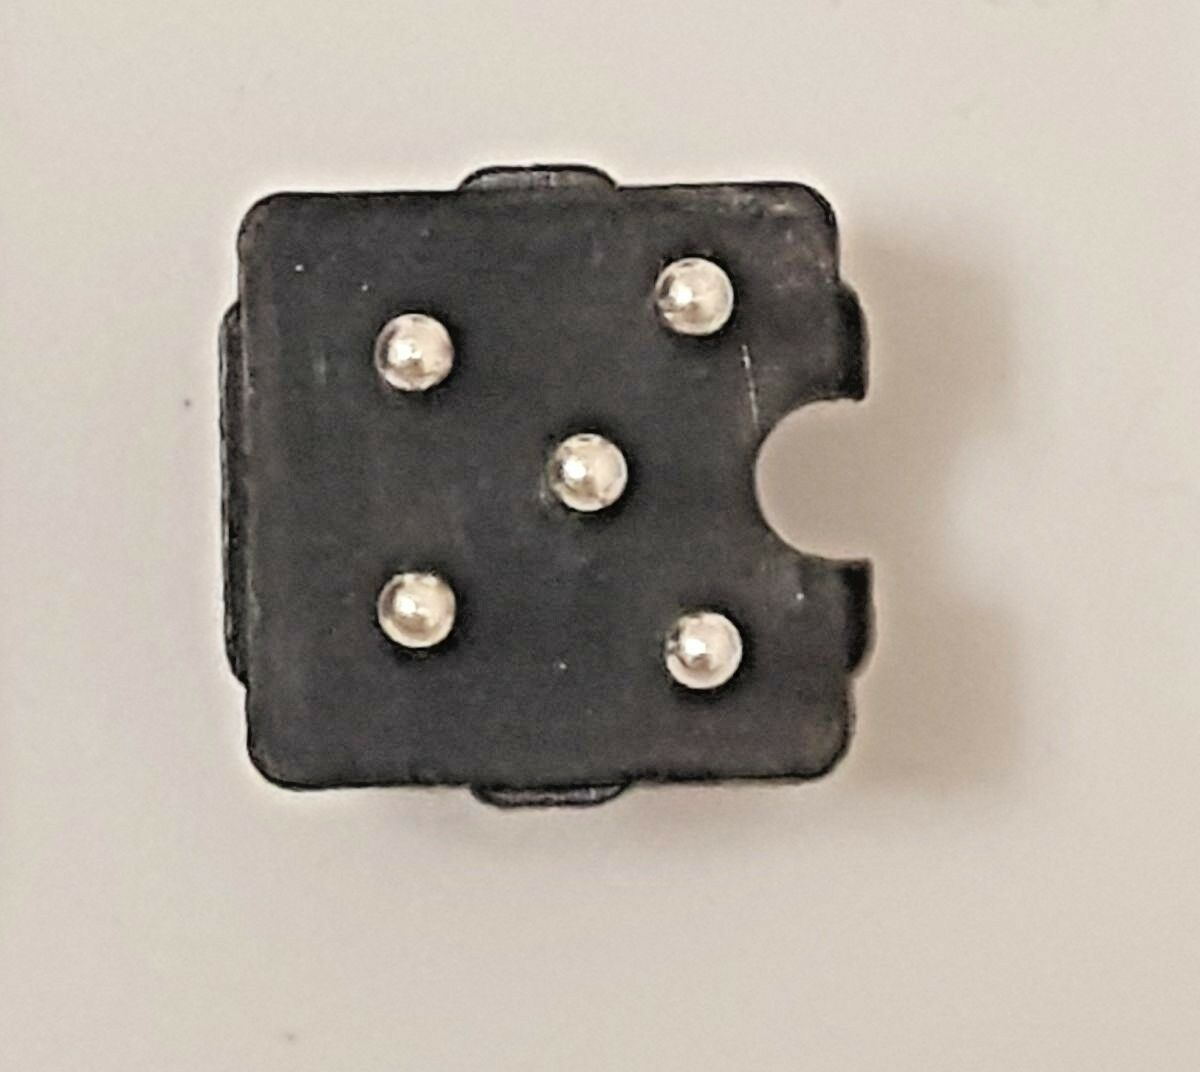 Power Supply Connector for Commodore Amiga 500, 600, 1200 and Commodore 128